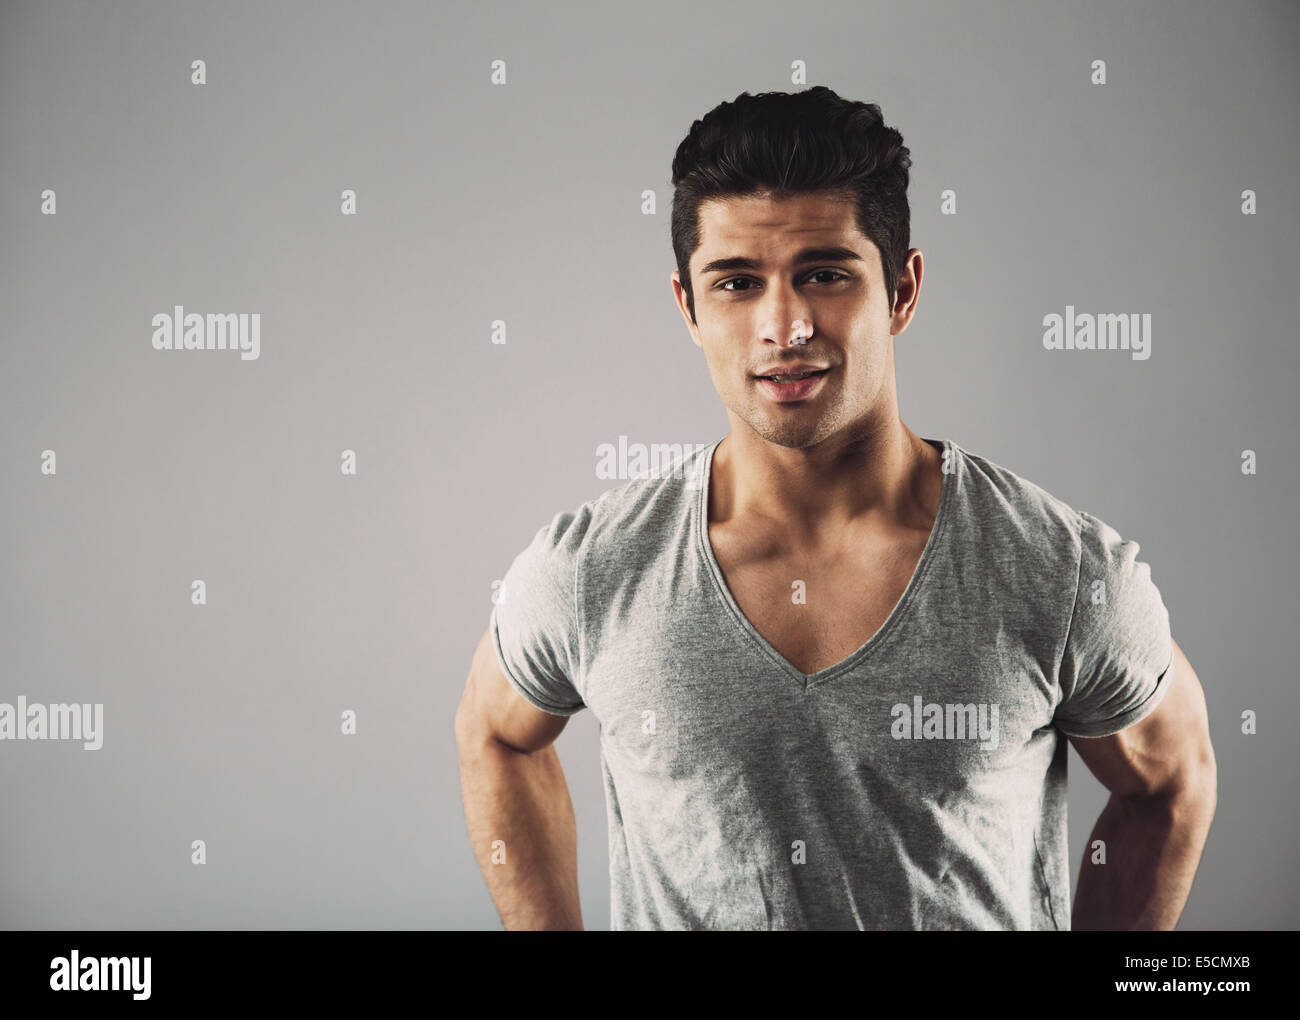 Portrait of confident young hispanic male fashion model posing against grey background with copy space. - Stock Image